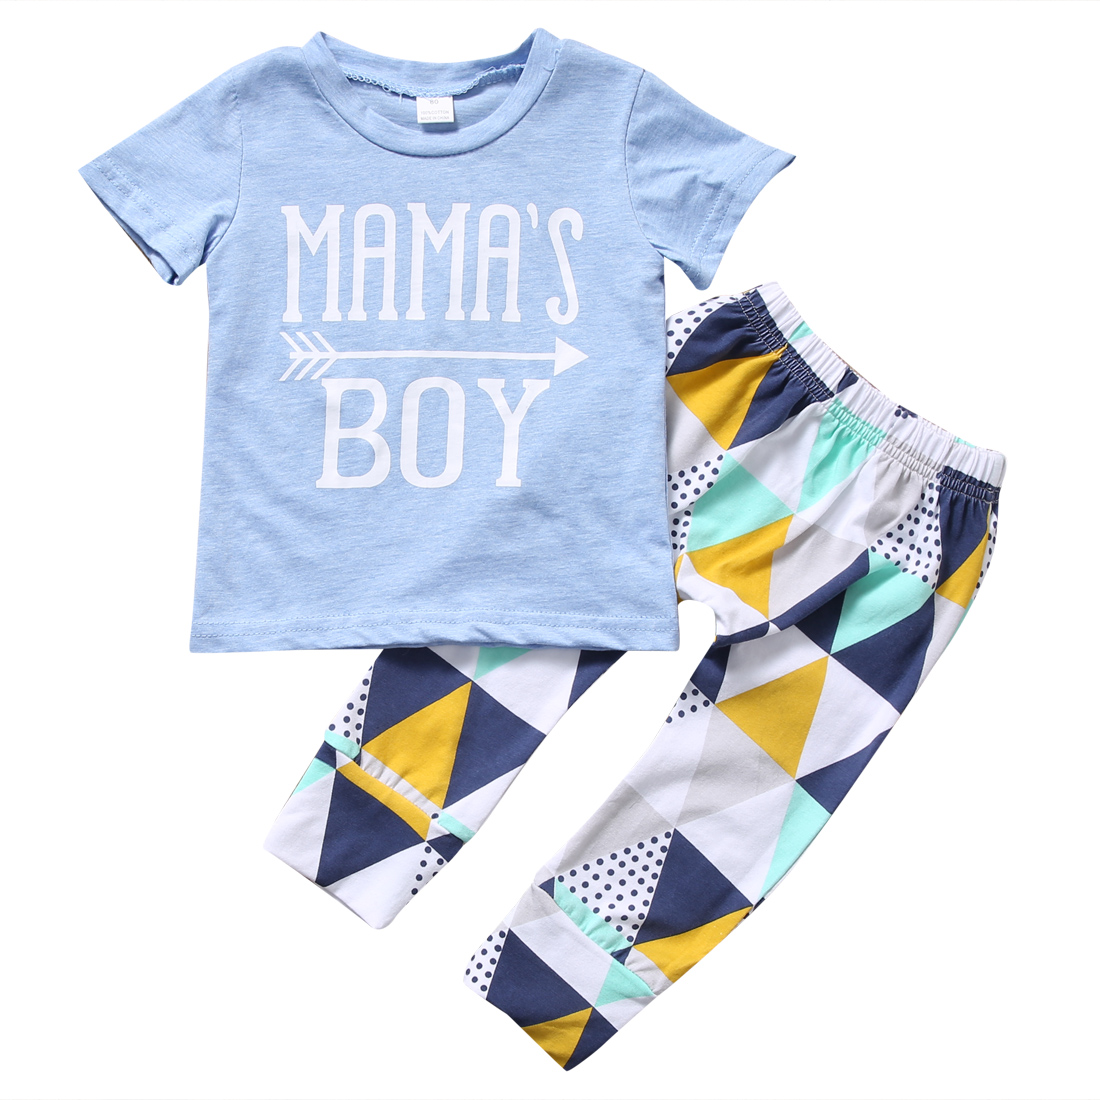 2017 Newborn Baby Boy Clothes Summer Short Sleeve Mama's Boy Cotton T-shirt Tops Pant 2PCS Outfit Toddler Kids Clothing Set 2017 newborn baby boy clothes summer short sleeve mama s boy cotton t shirt tops pant 2pcs outfit toddler kids clothing set